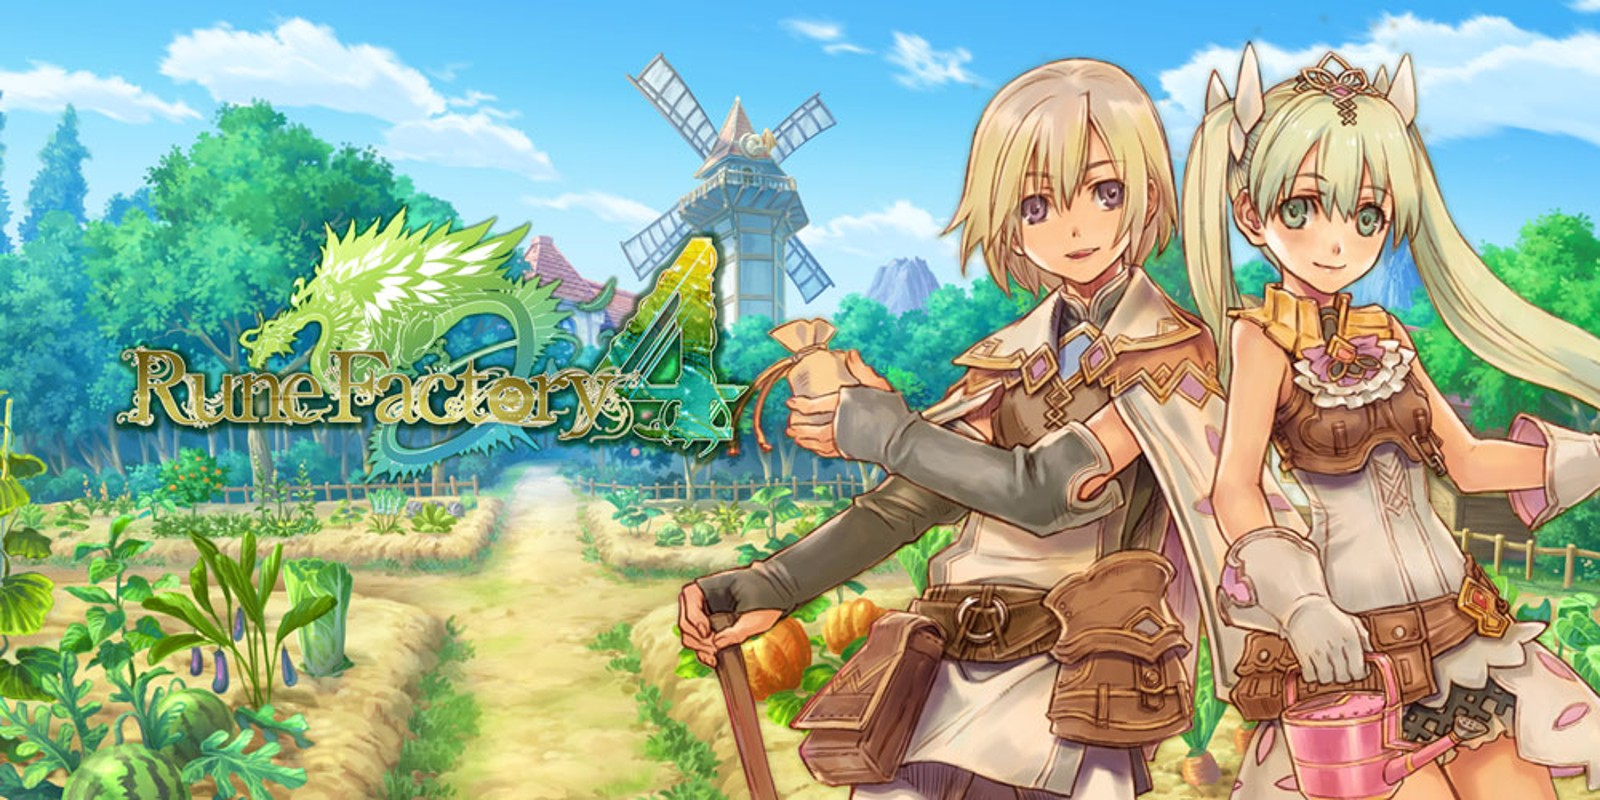 rune factory 4 dating margaret Rune factory 4 roman here we are the final one rune factory 4 margaret proposal event 50 videos play all rune factory 4 dating.